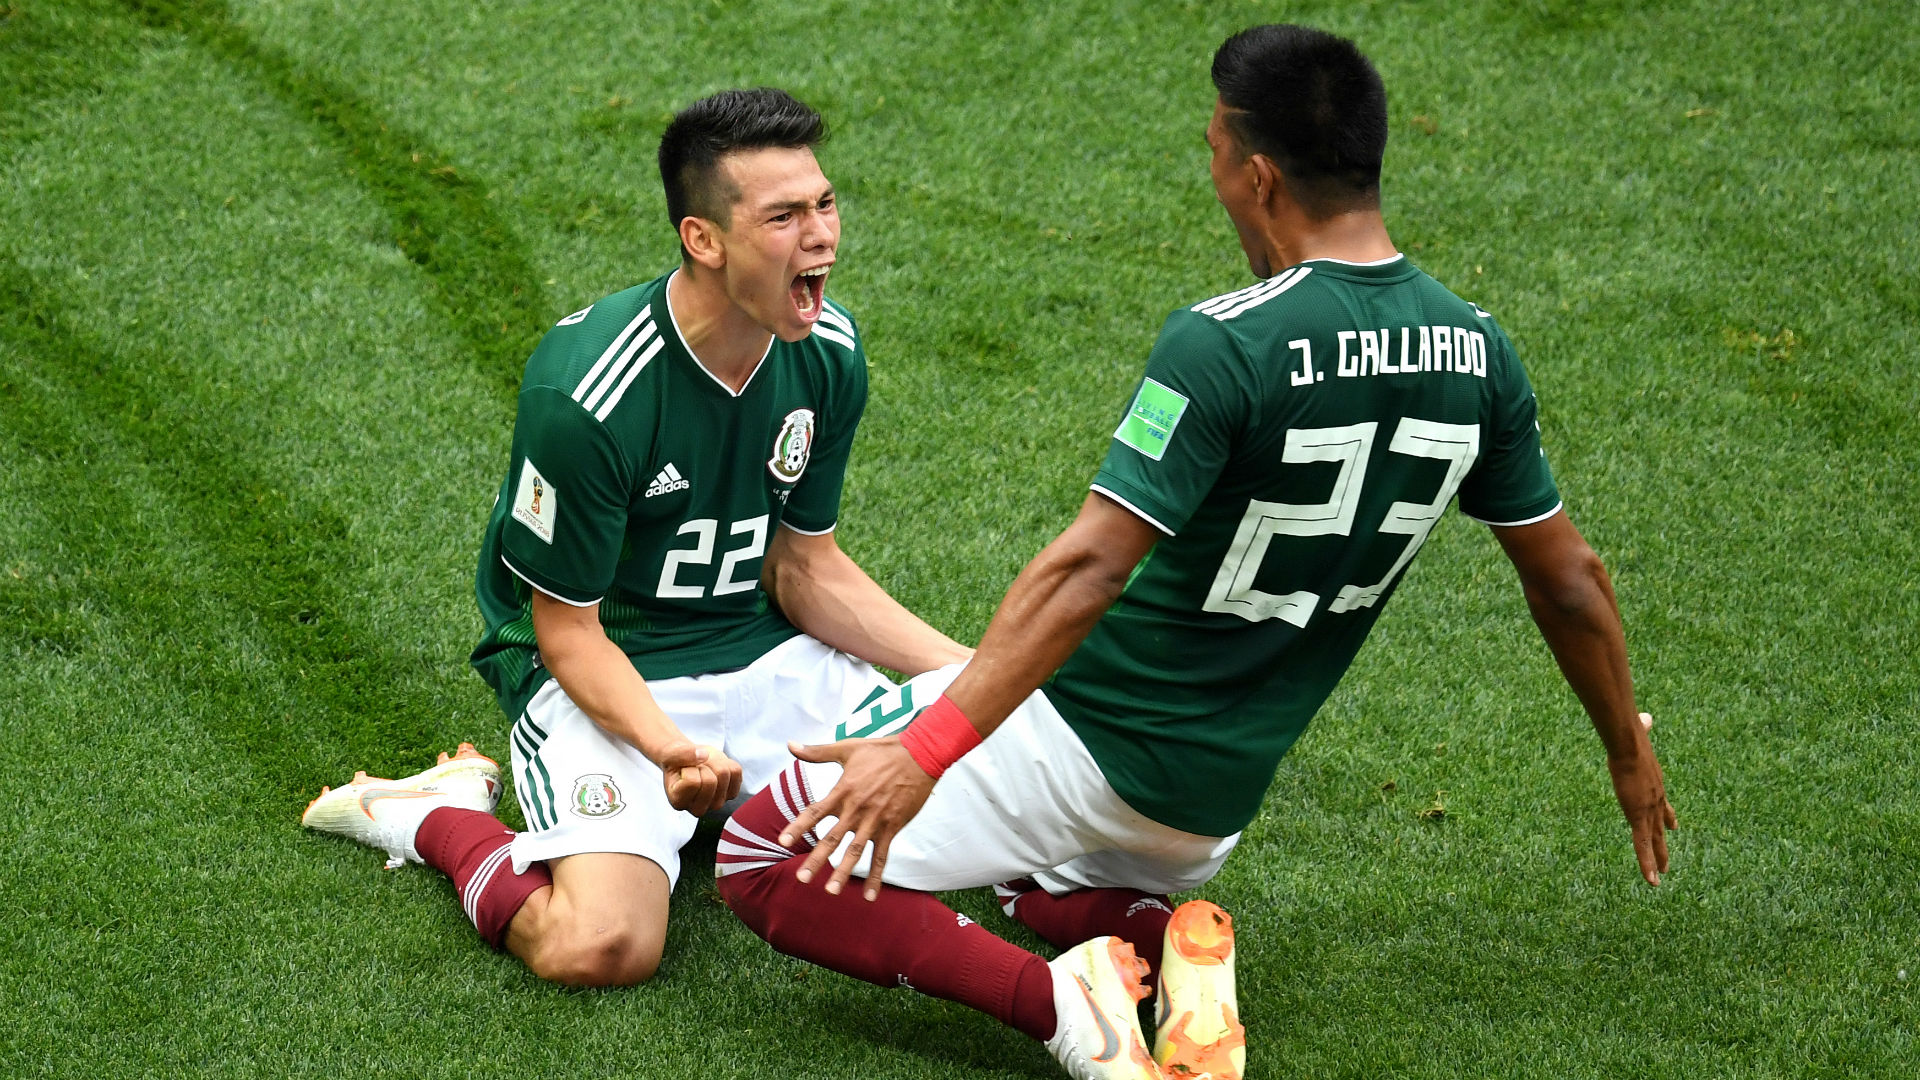 Mexico Beats Germany 1-0 In World Cup, Avenges News Outlet's Insult